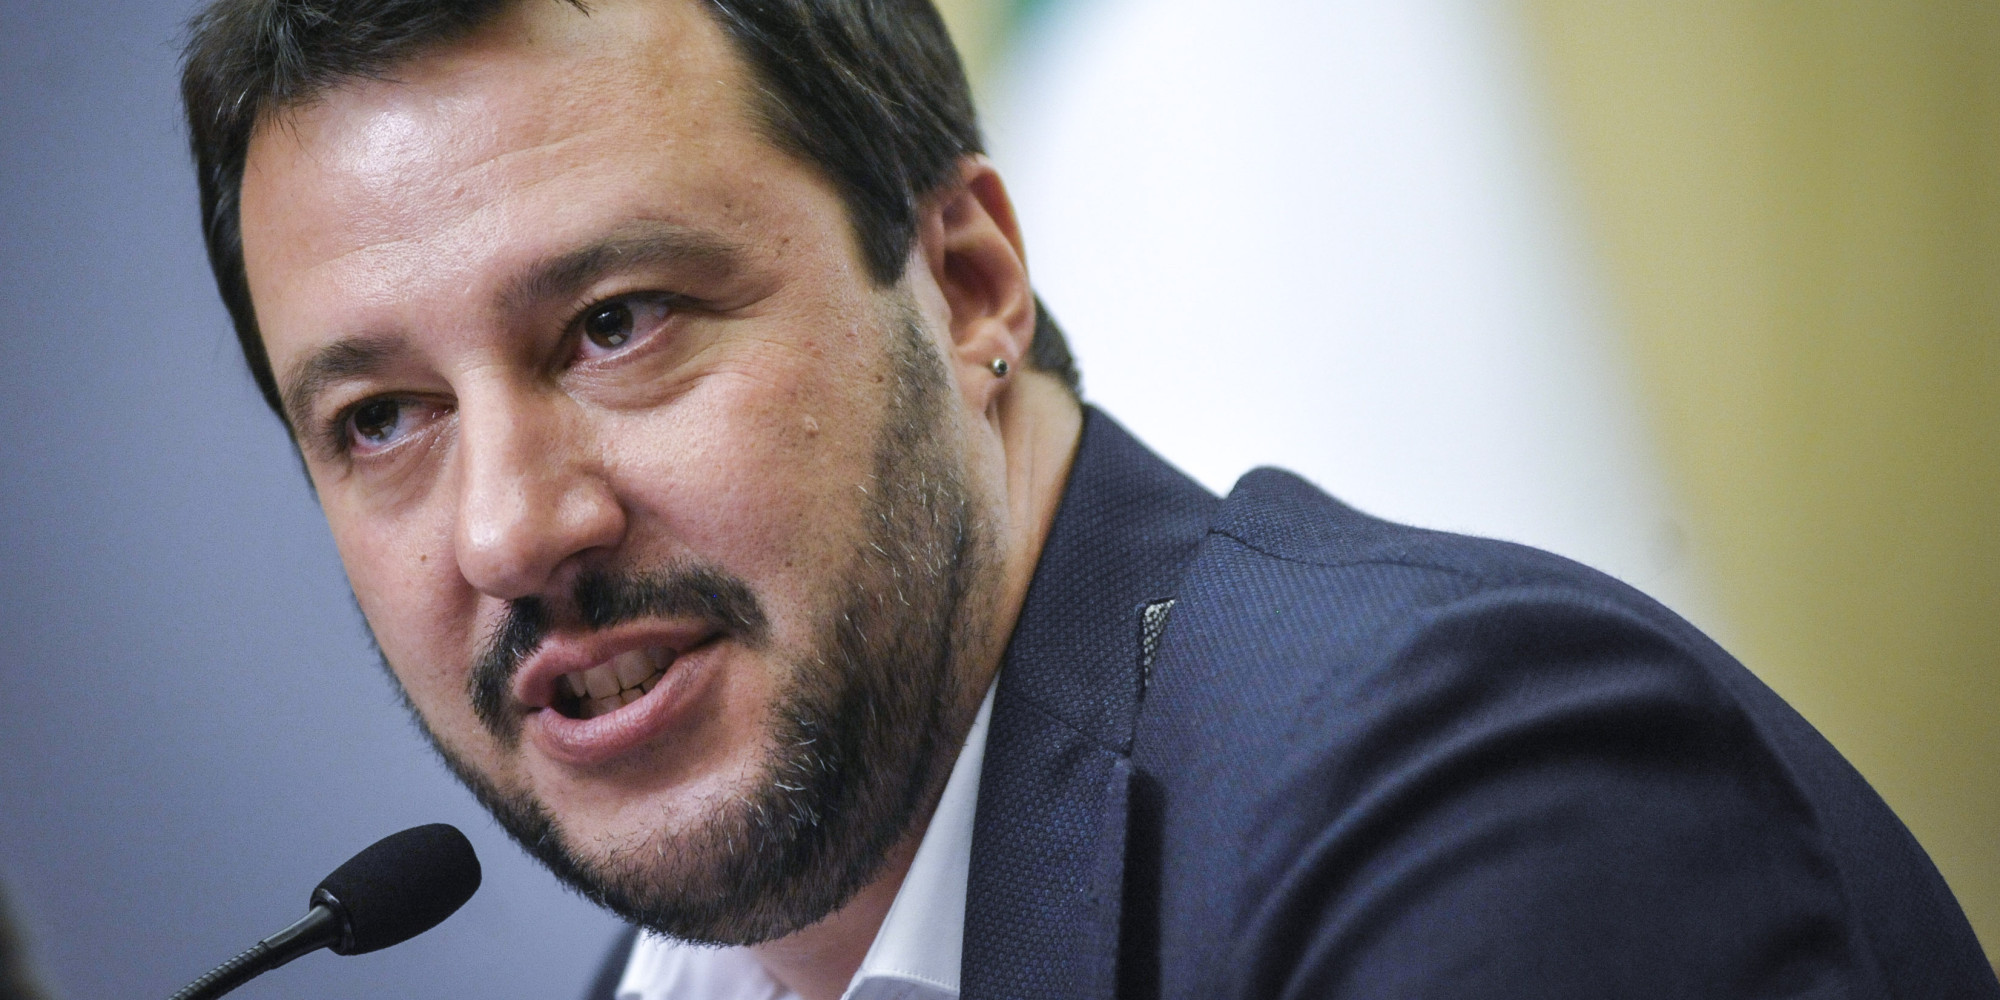 salvini - photo #36